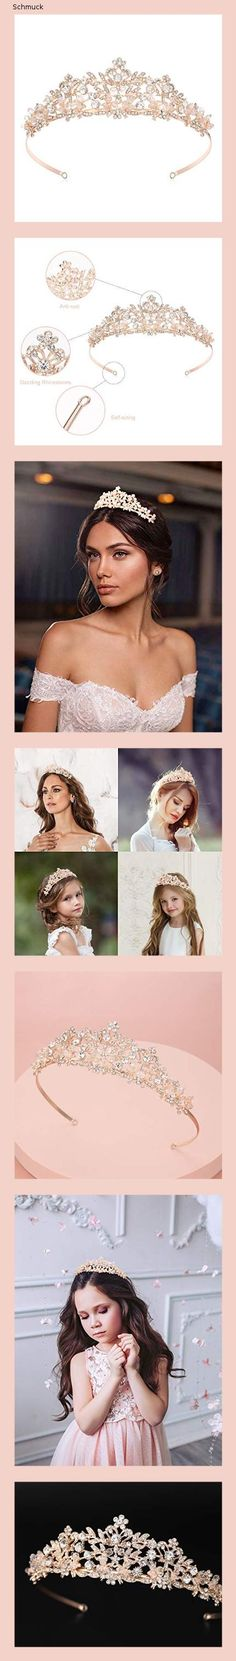 Makone Tiara Kristallkrone mit Strass-Kamm für Bridal Crown Hochzeit Proms Festzüge Prinzessin Parties Geburtstag (Kamm Stil-15G) - 14nh Partys, Beautiful, Movies, Movie Posters, Rhinestones, My Daughter, Crystals, Birthday, Wedding